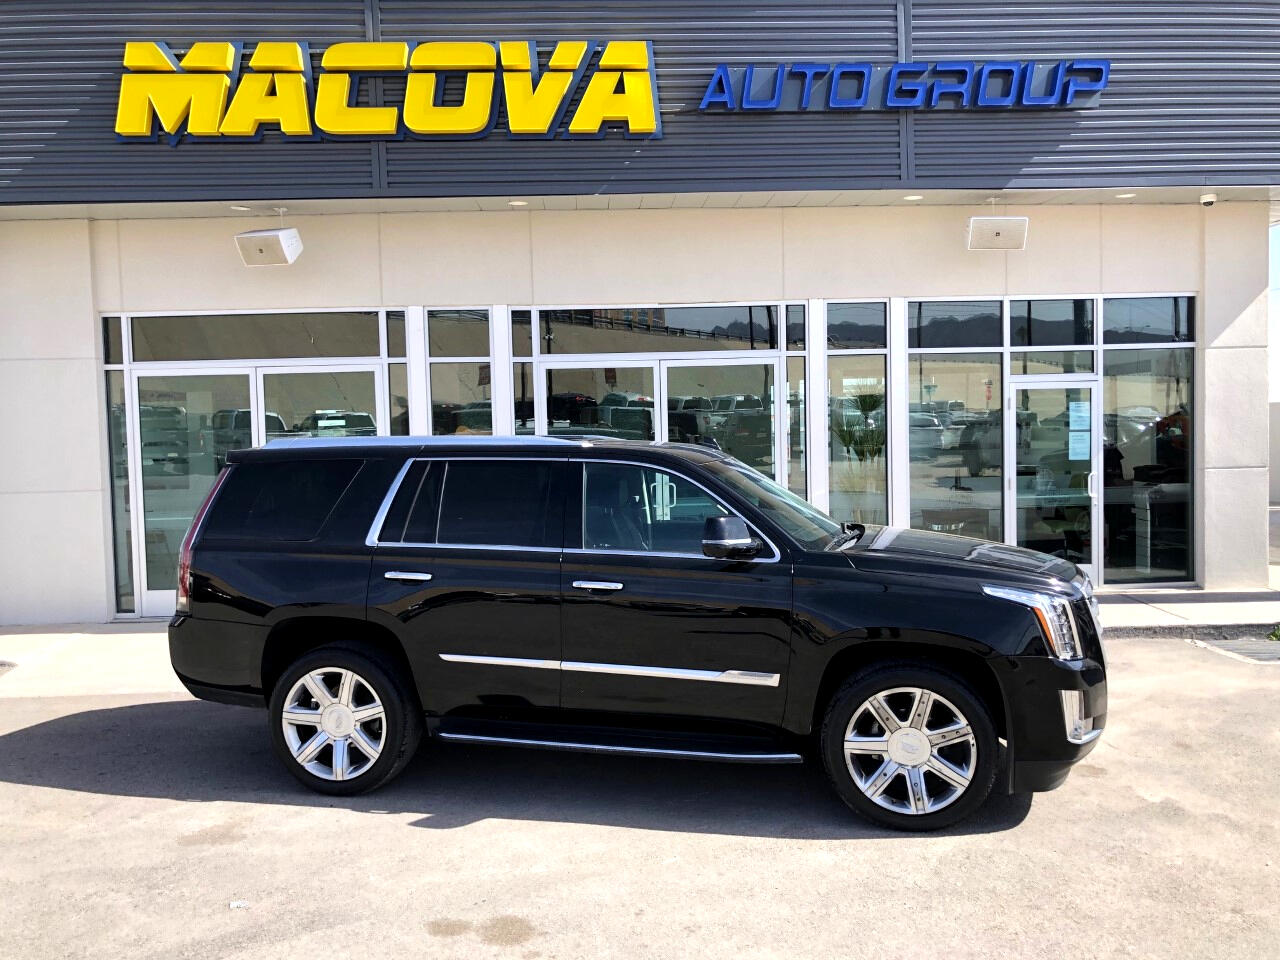 Cadillac Escalade Luxury 2WD 2016